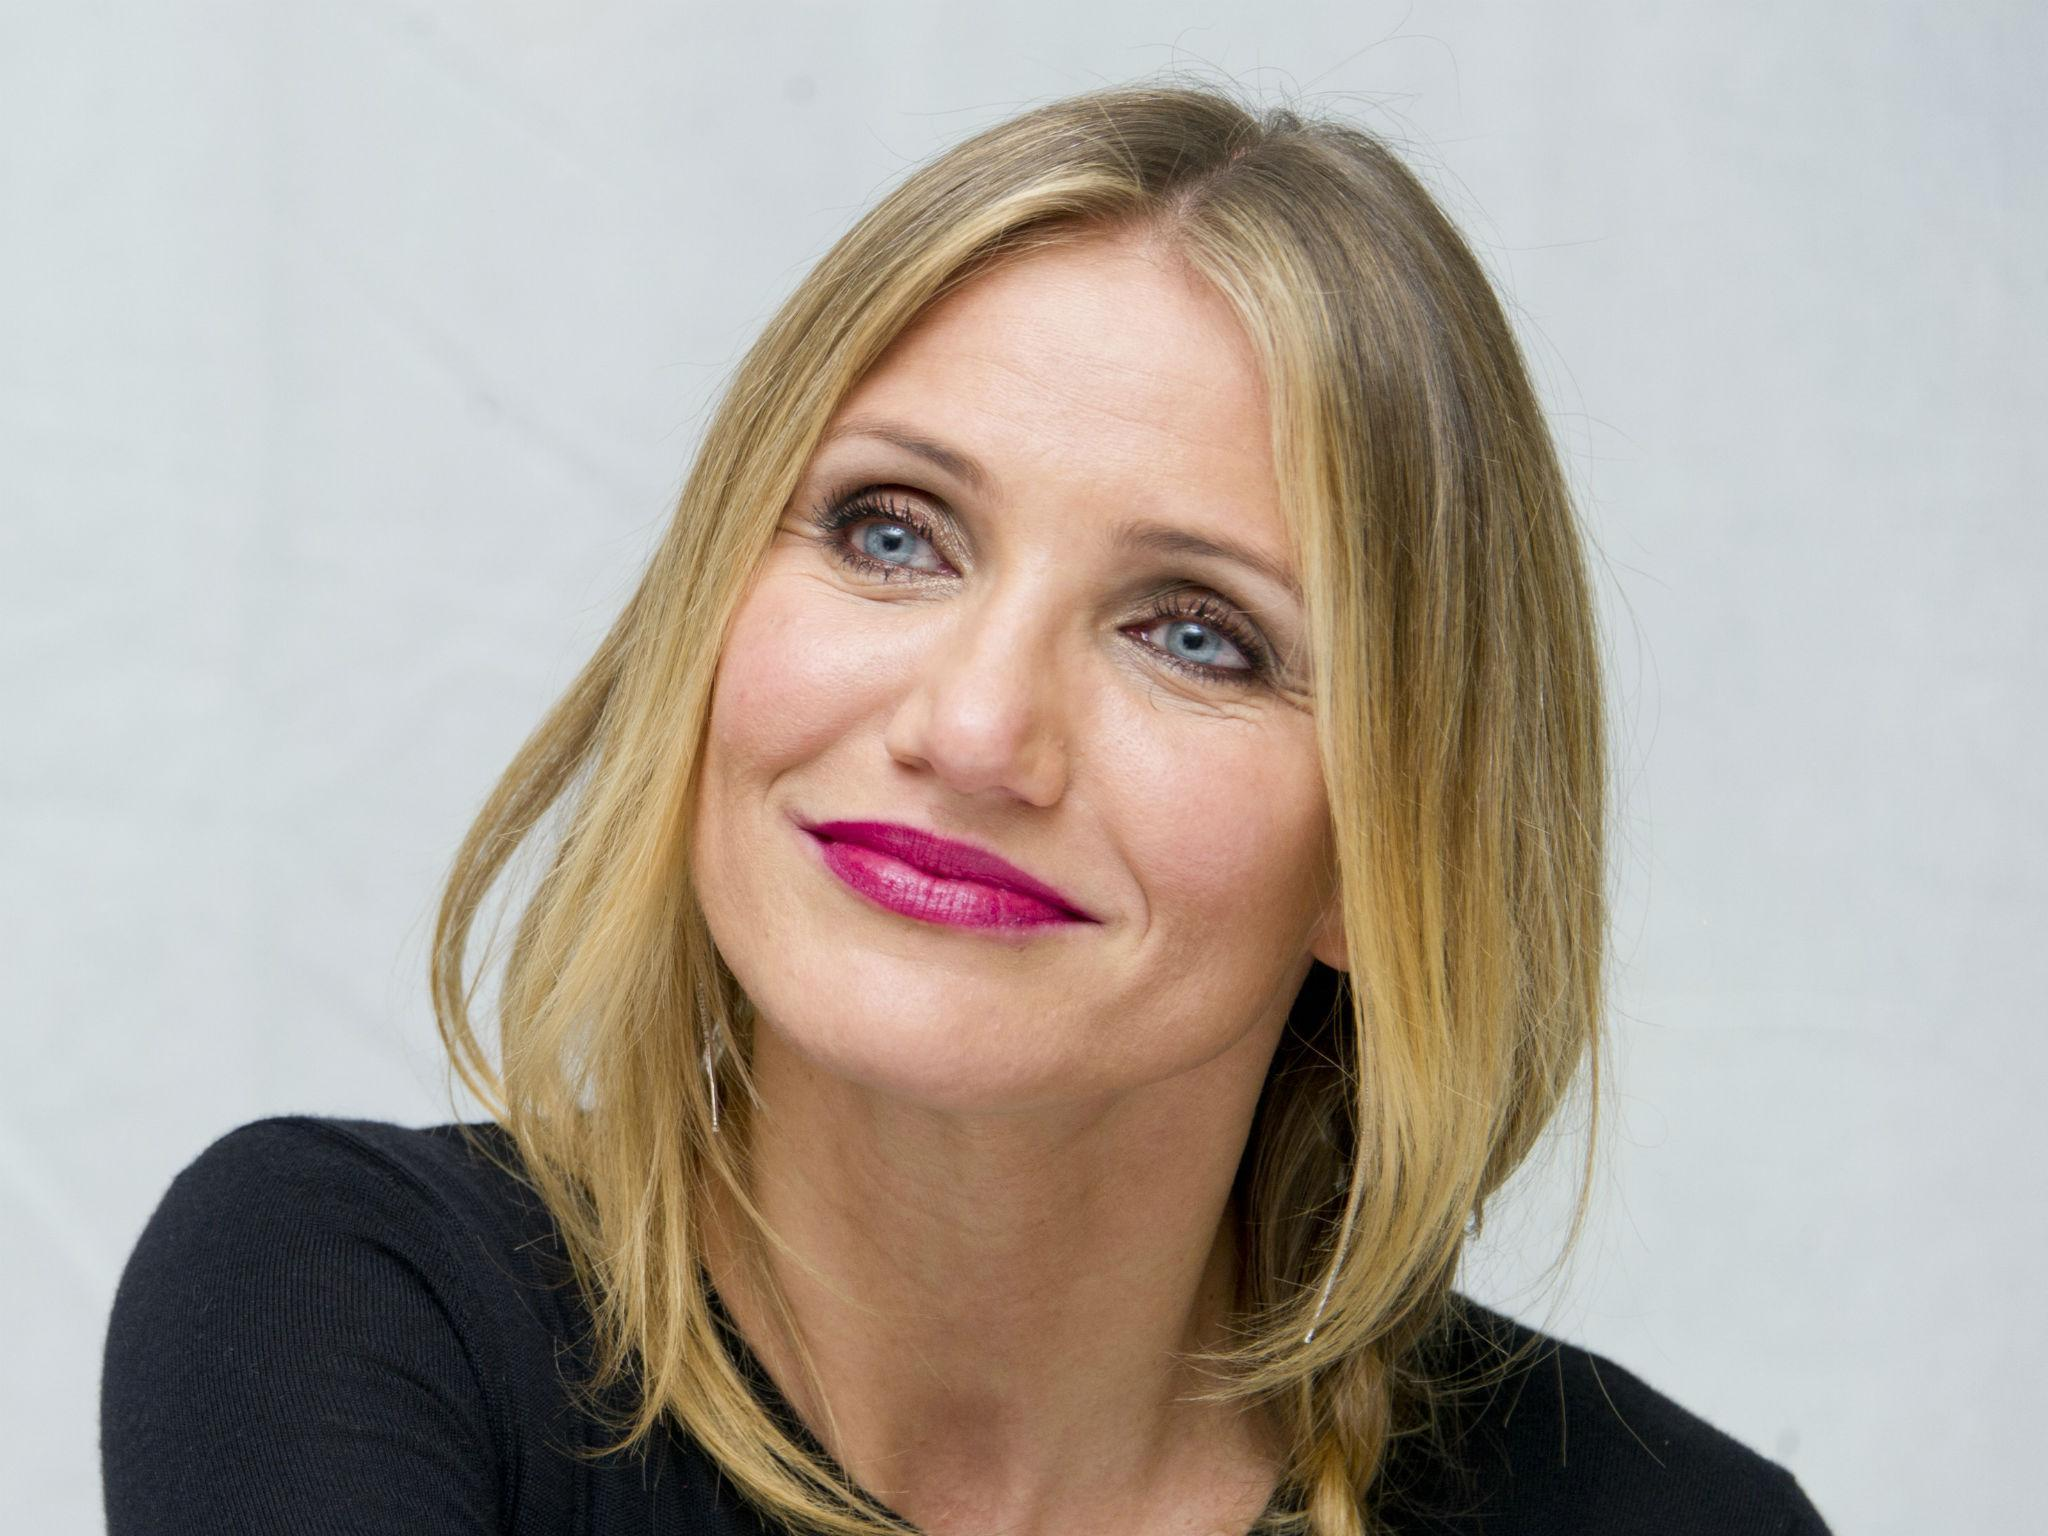 Cameron Diaz nudes (37 photo), Pussy, Hot, Boobs, lingerie 2018